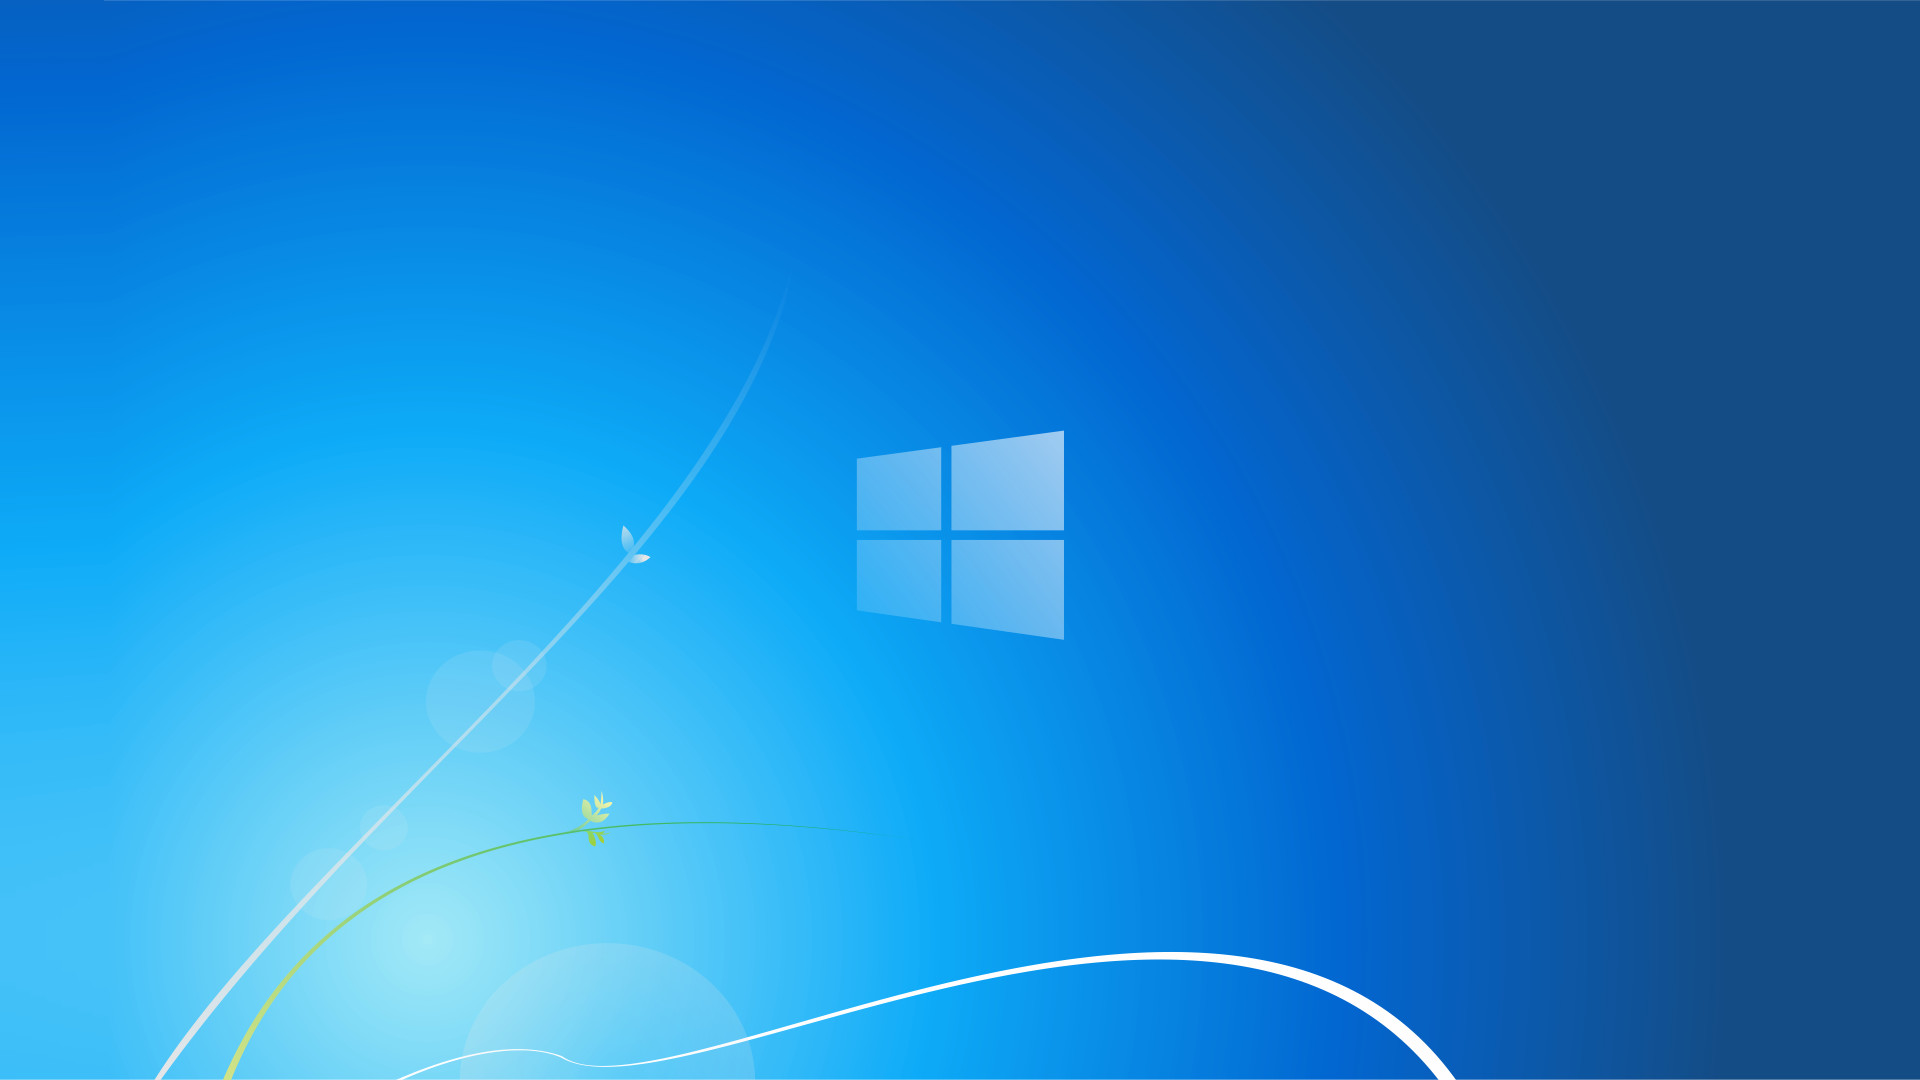 Windows 81 Lock Screen Wallpapers (60+ Images